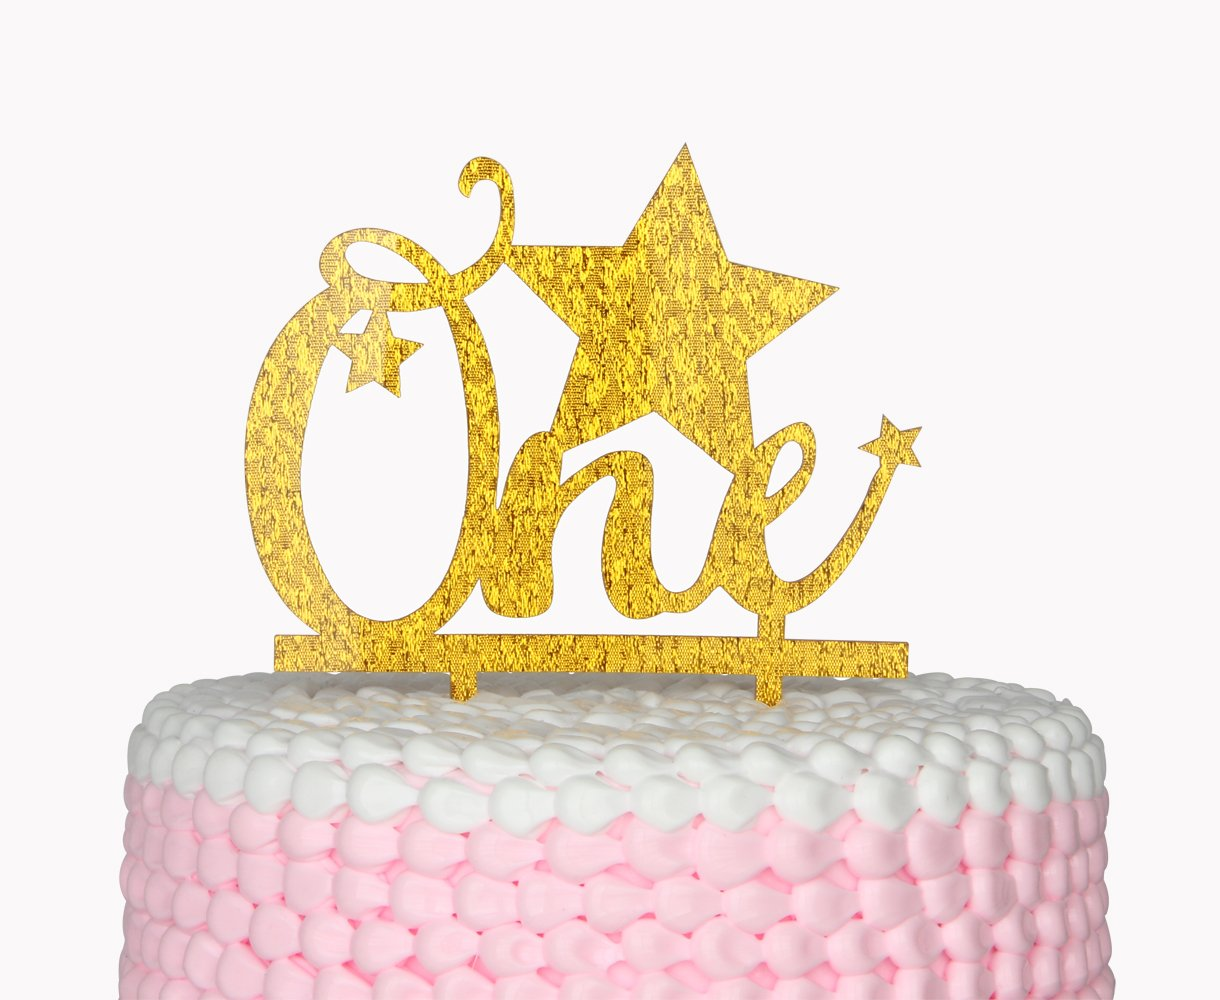 Amazon One Happy Birthday Gold Cake TopperStar TopperTwinkle Twinkle Little Star Kitchen Dining